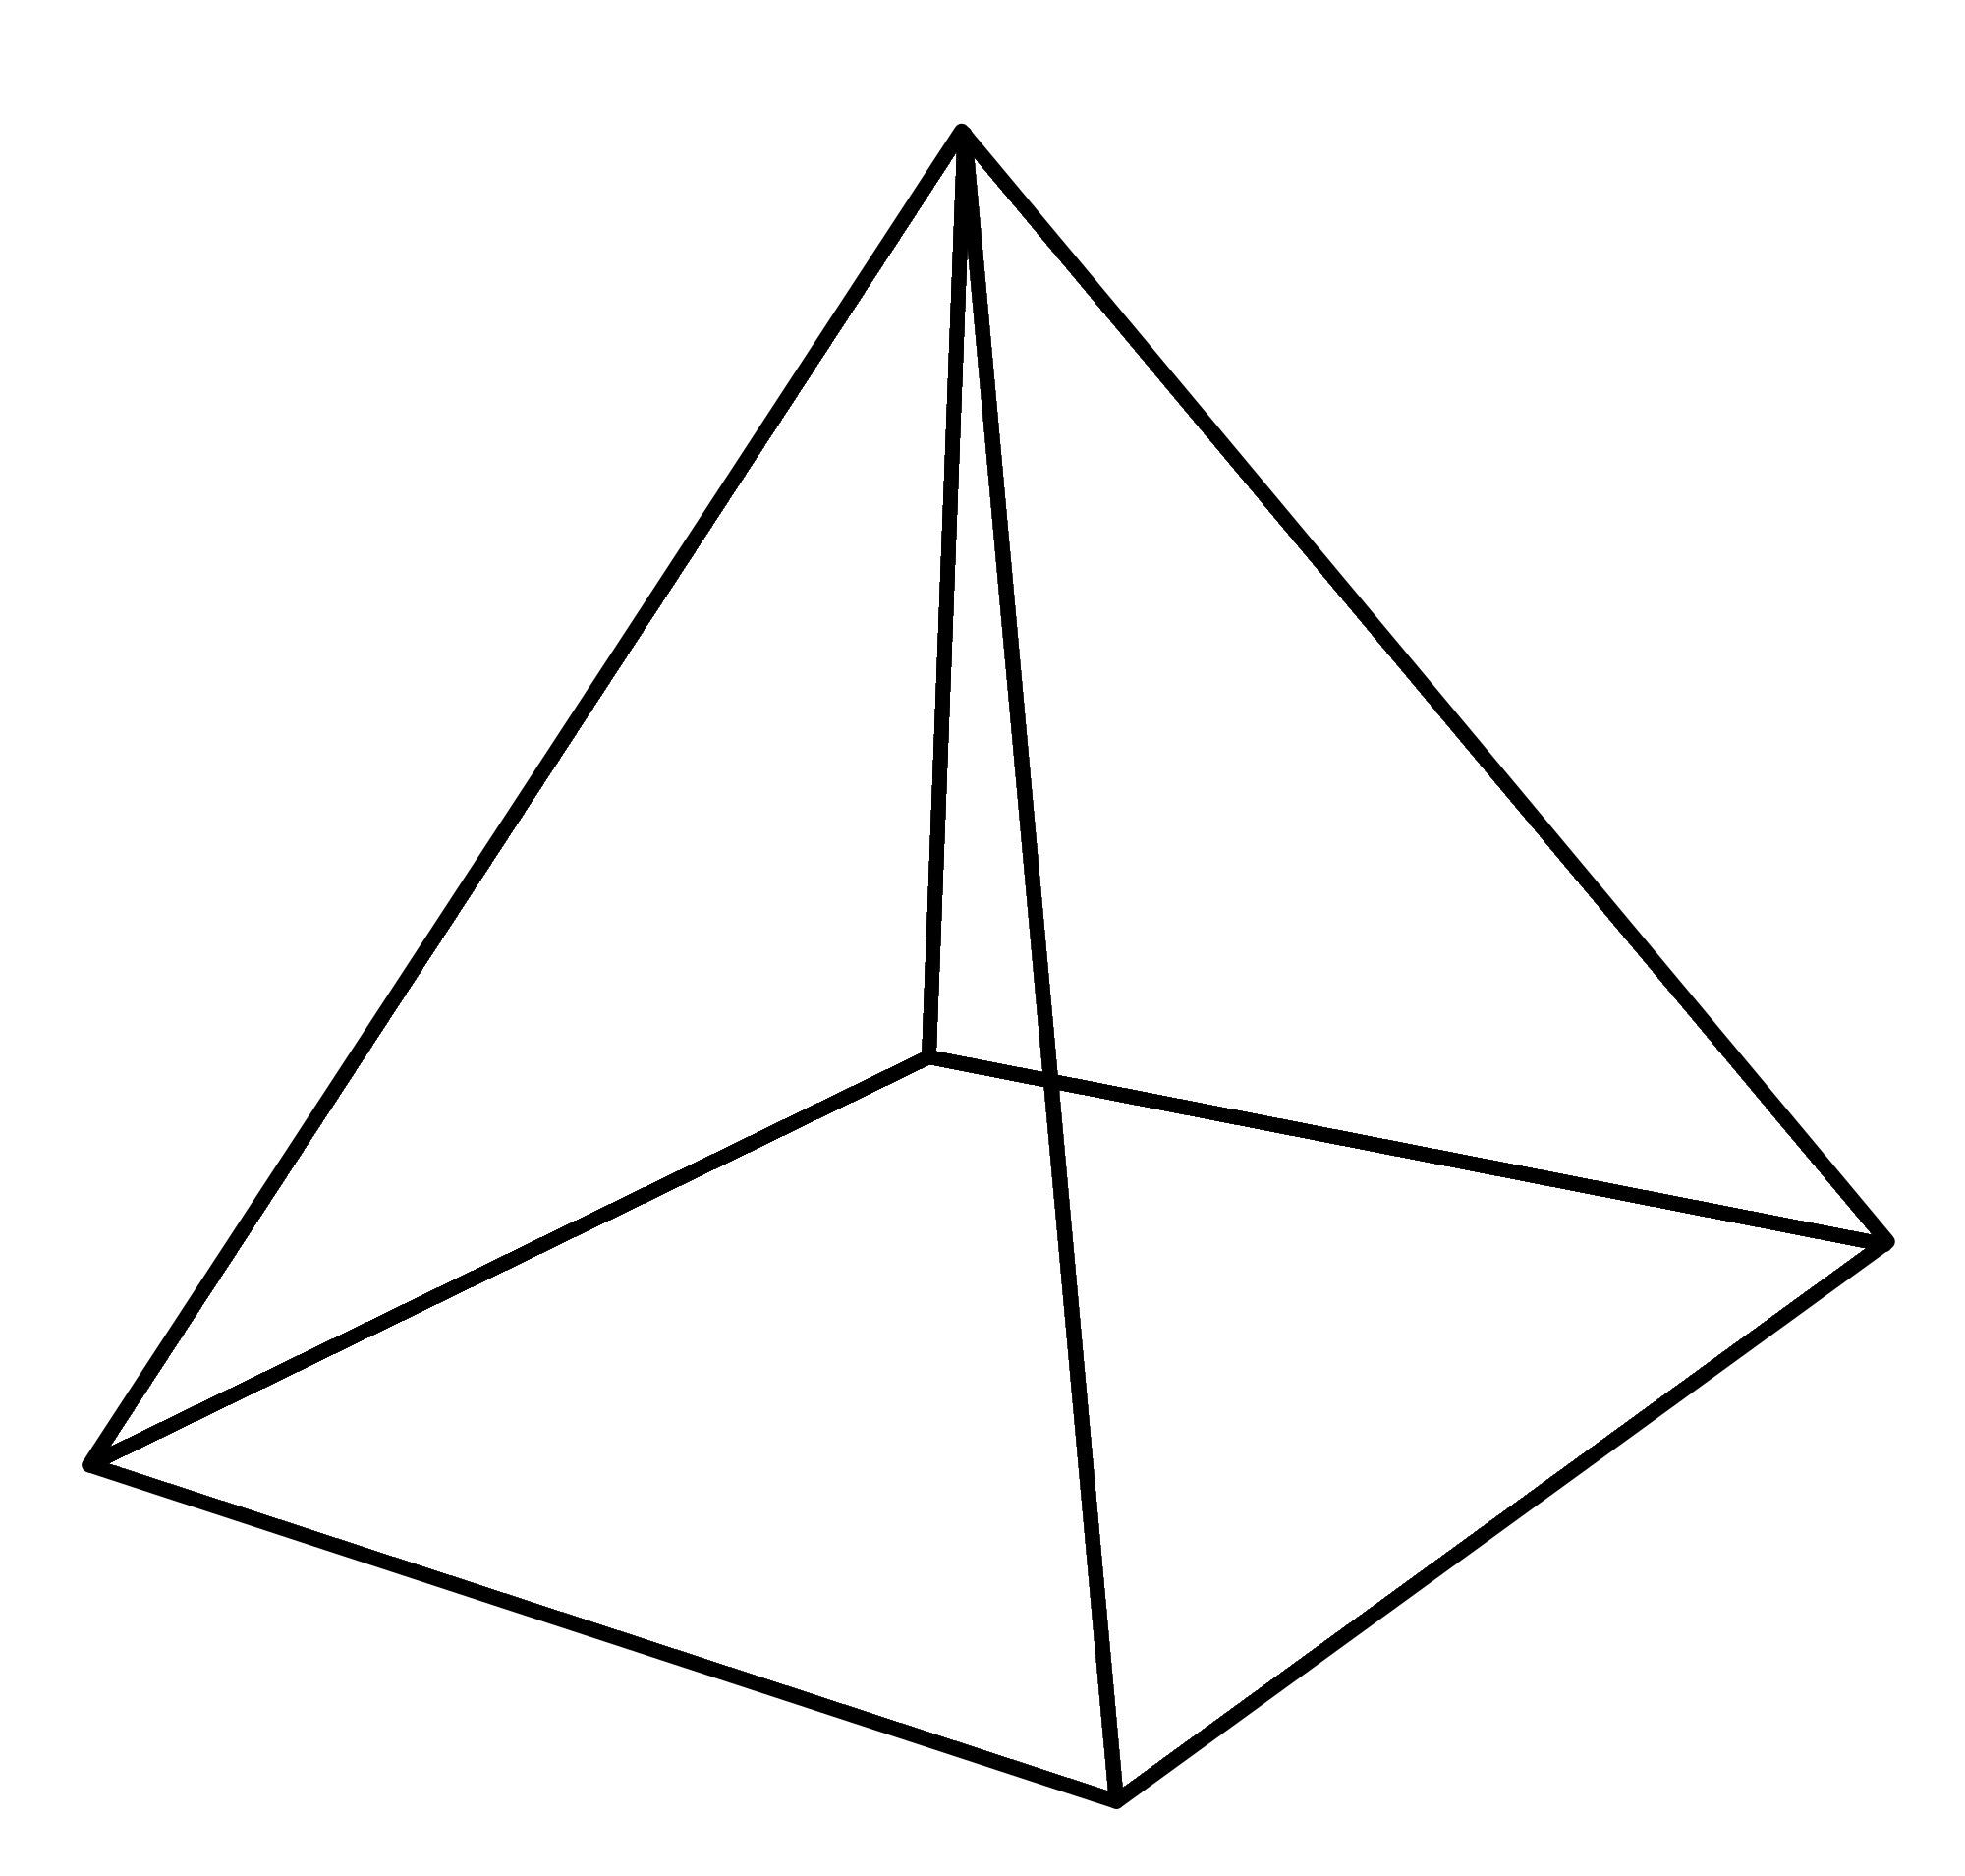 Coloring geometric shapes made of paper Pyramid layout, the pyramid pattern paper